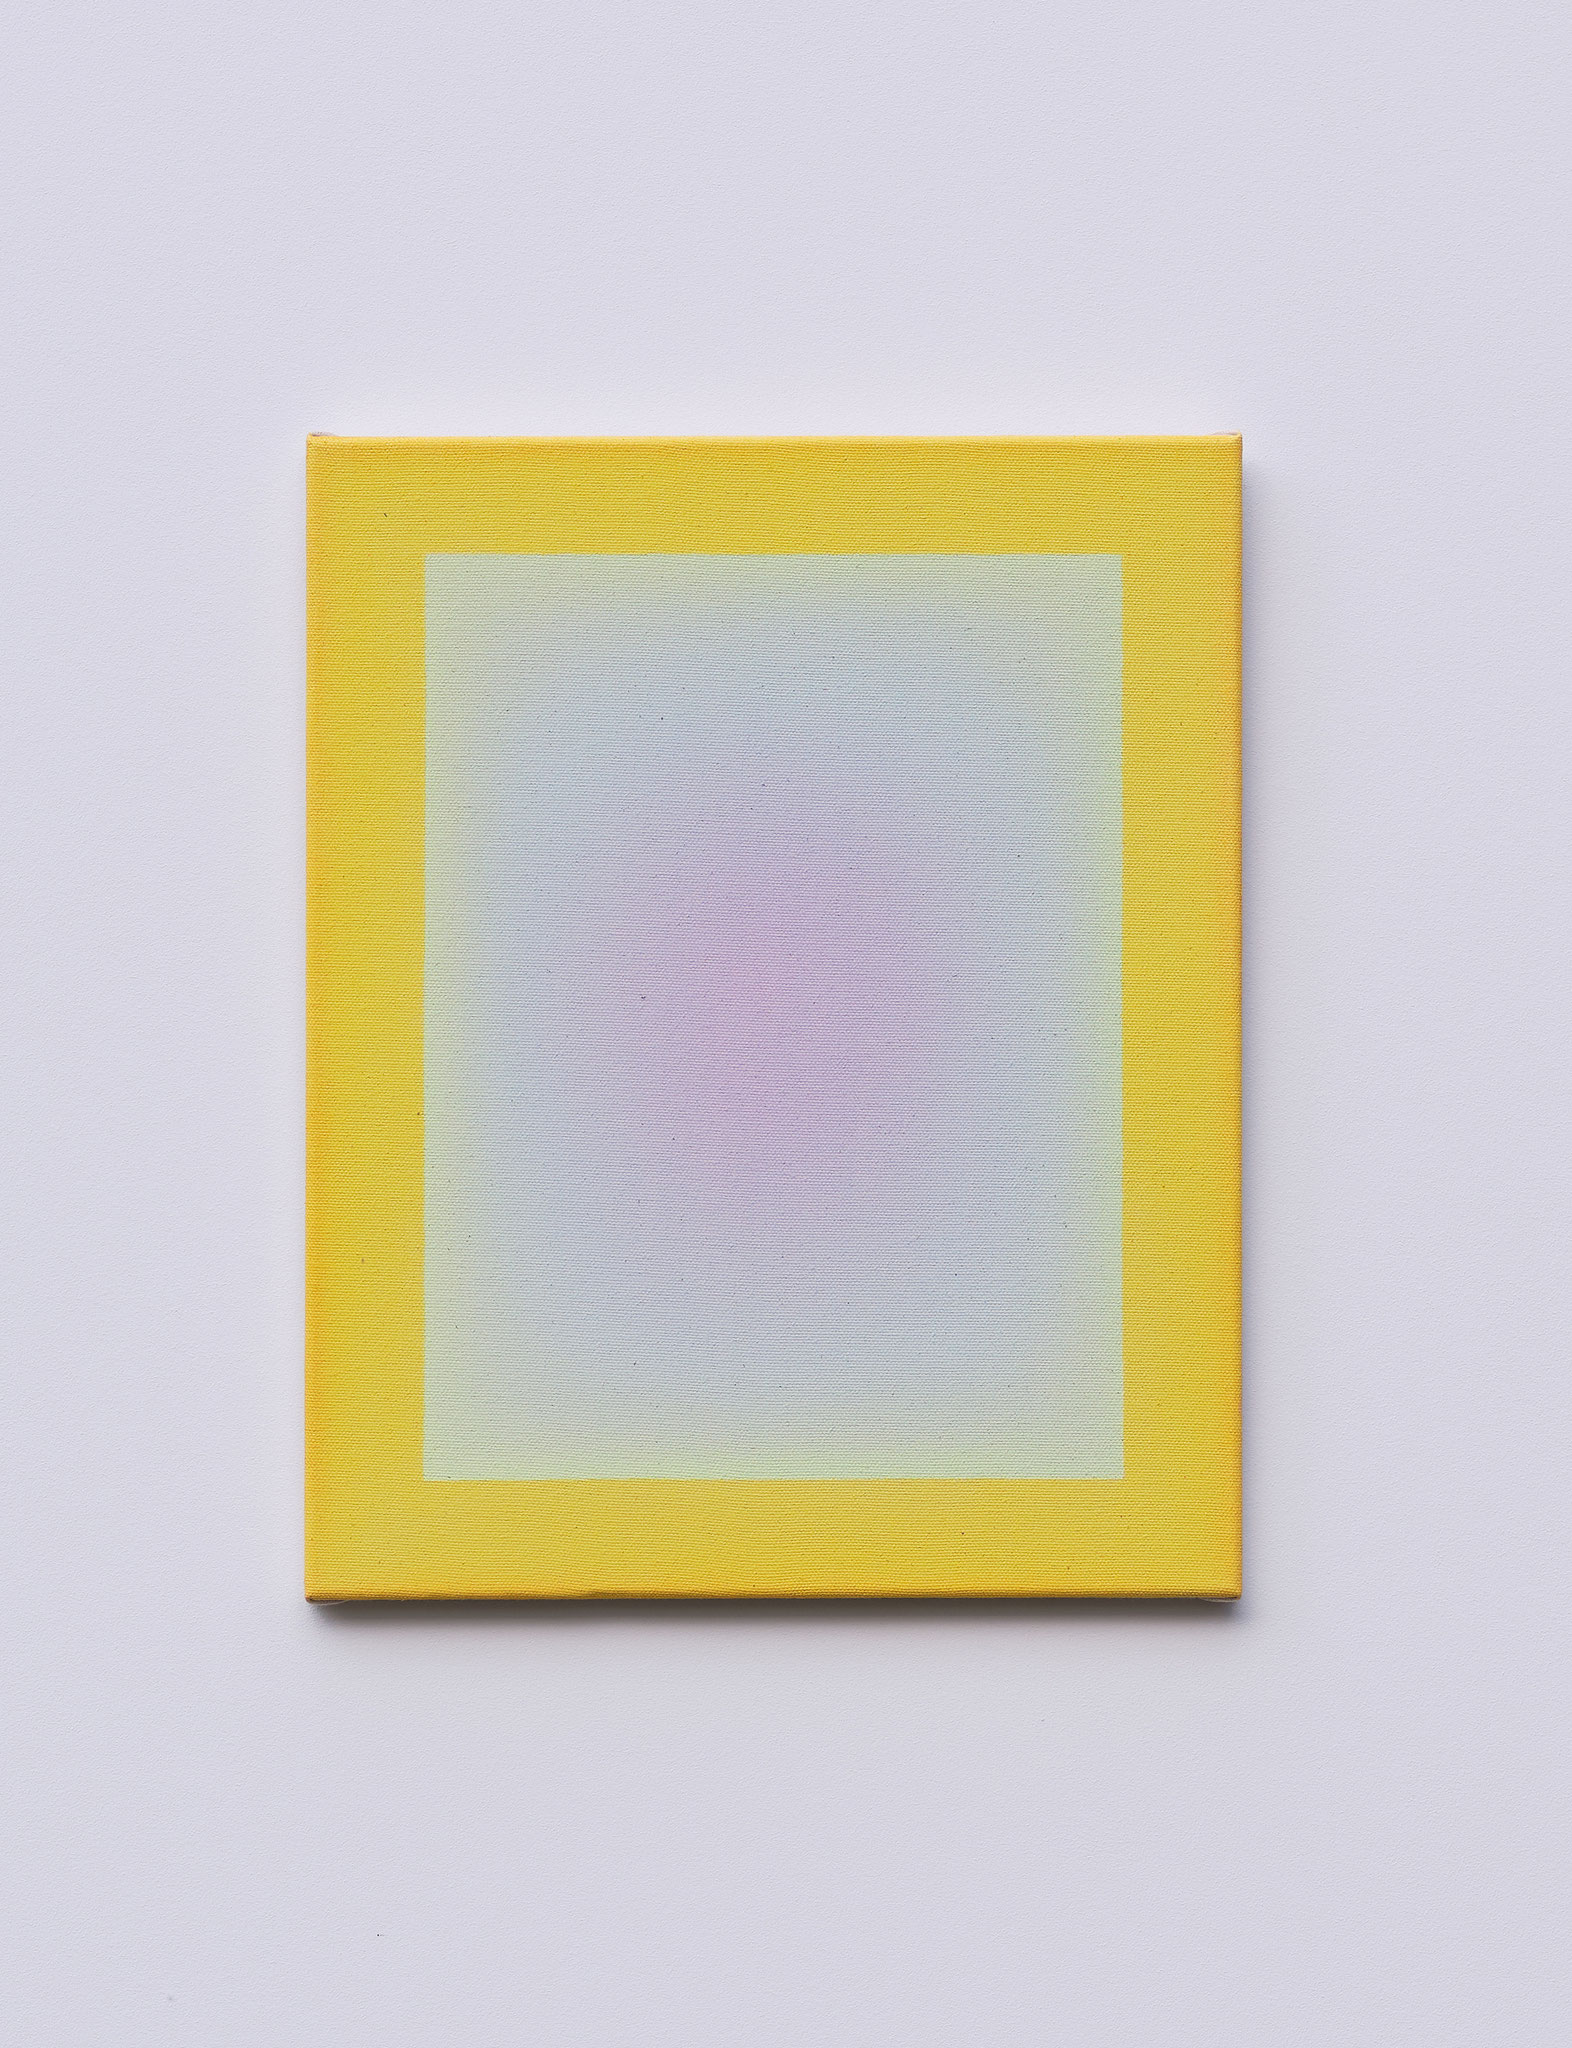 "Alina Birkner ""Untitled (Essence of Violet)"" 2019, 40x50 cm, Acrylic on Canvas"